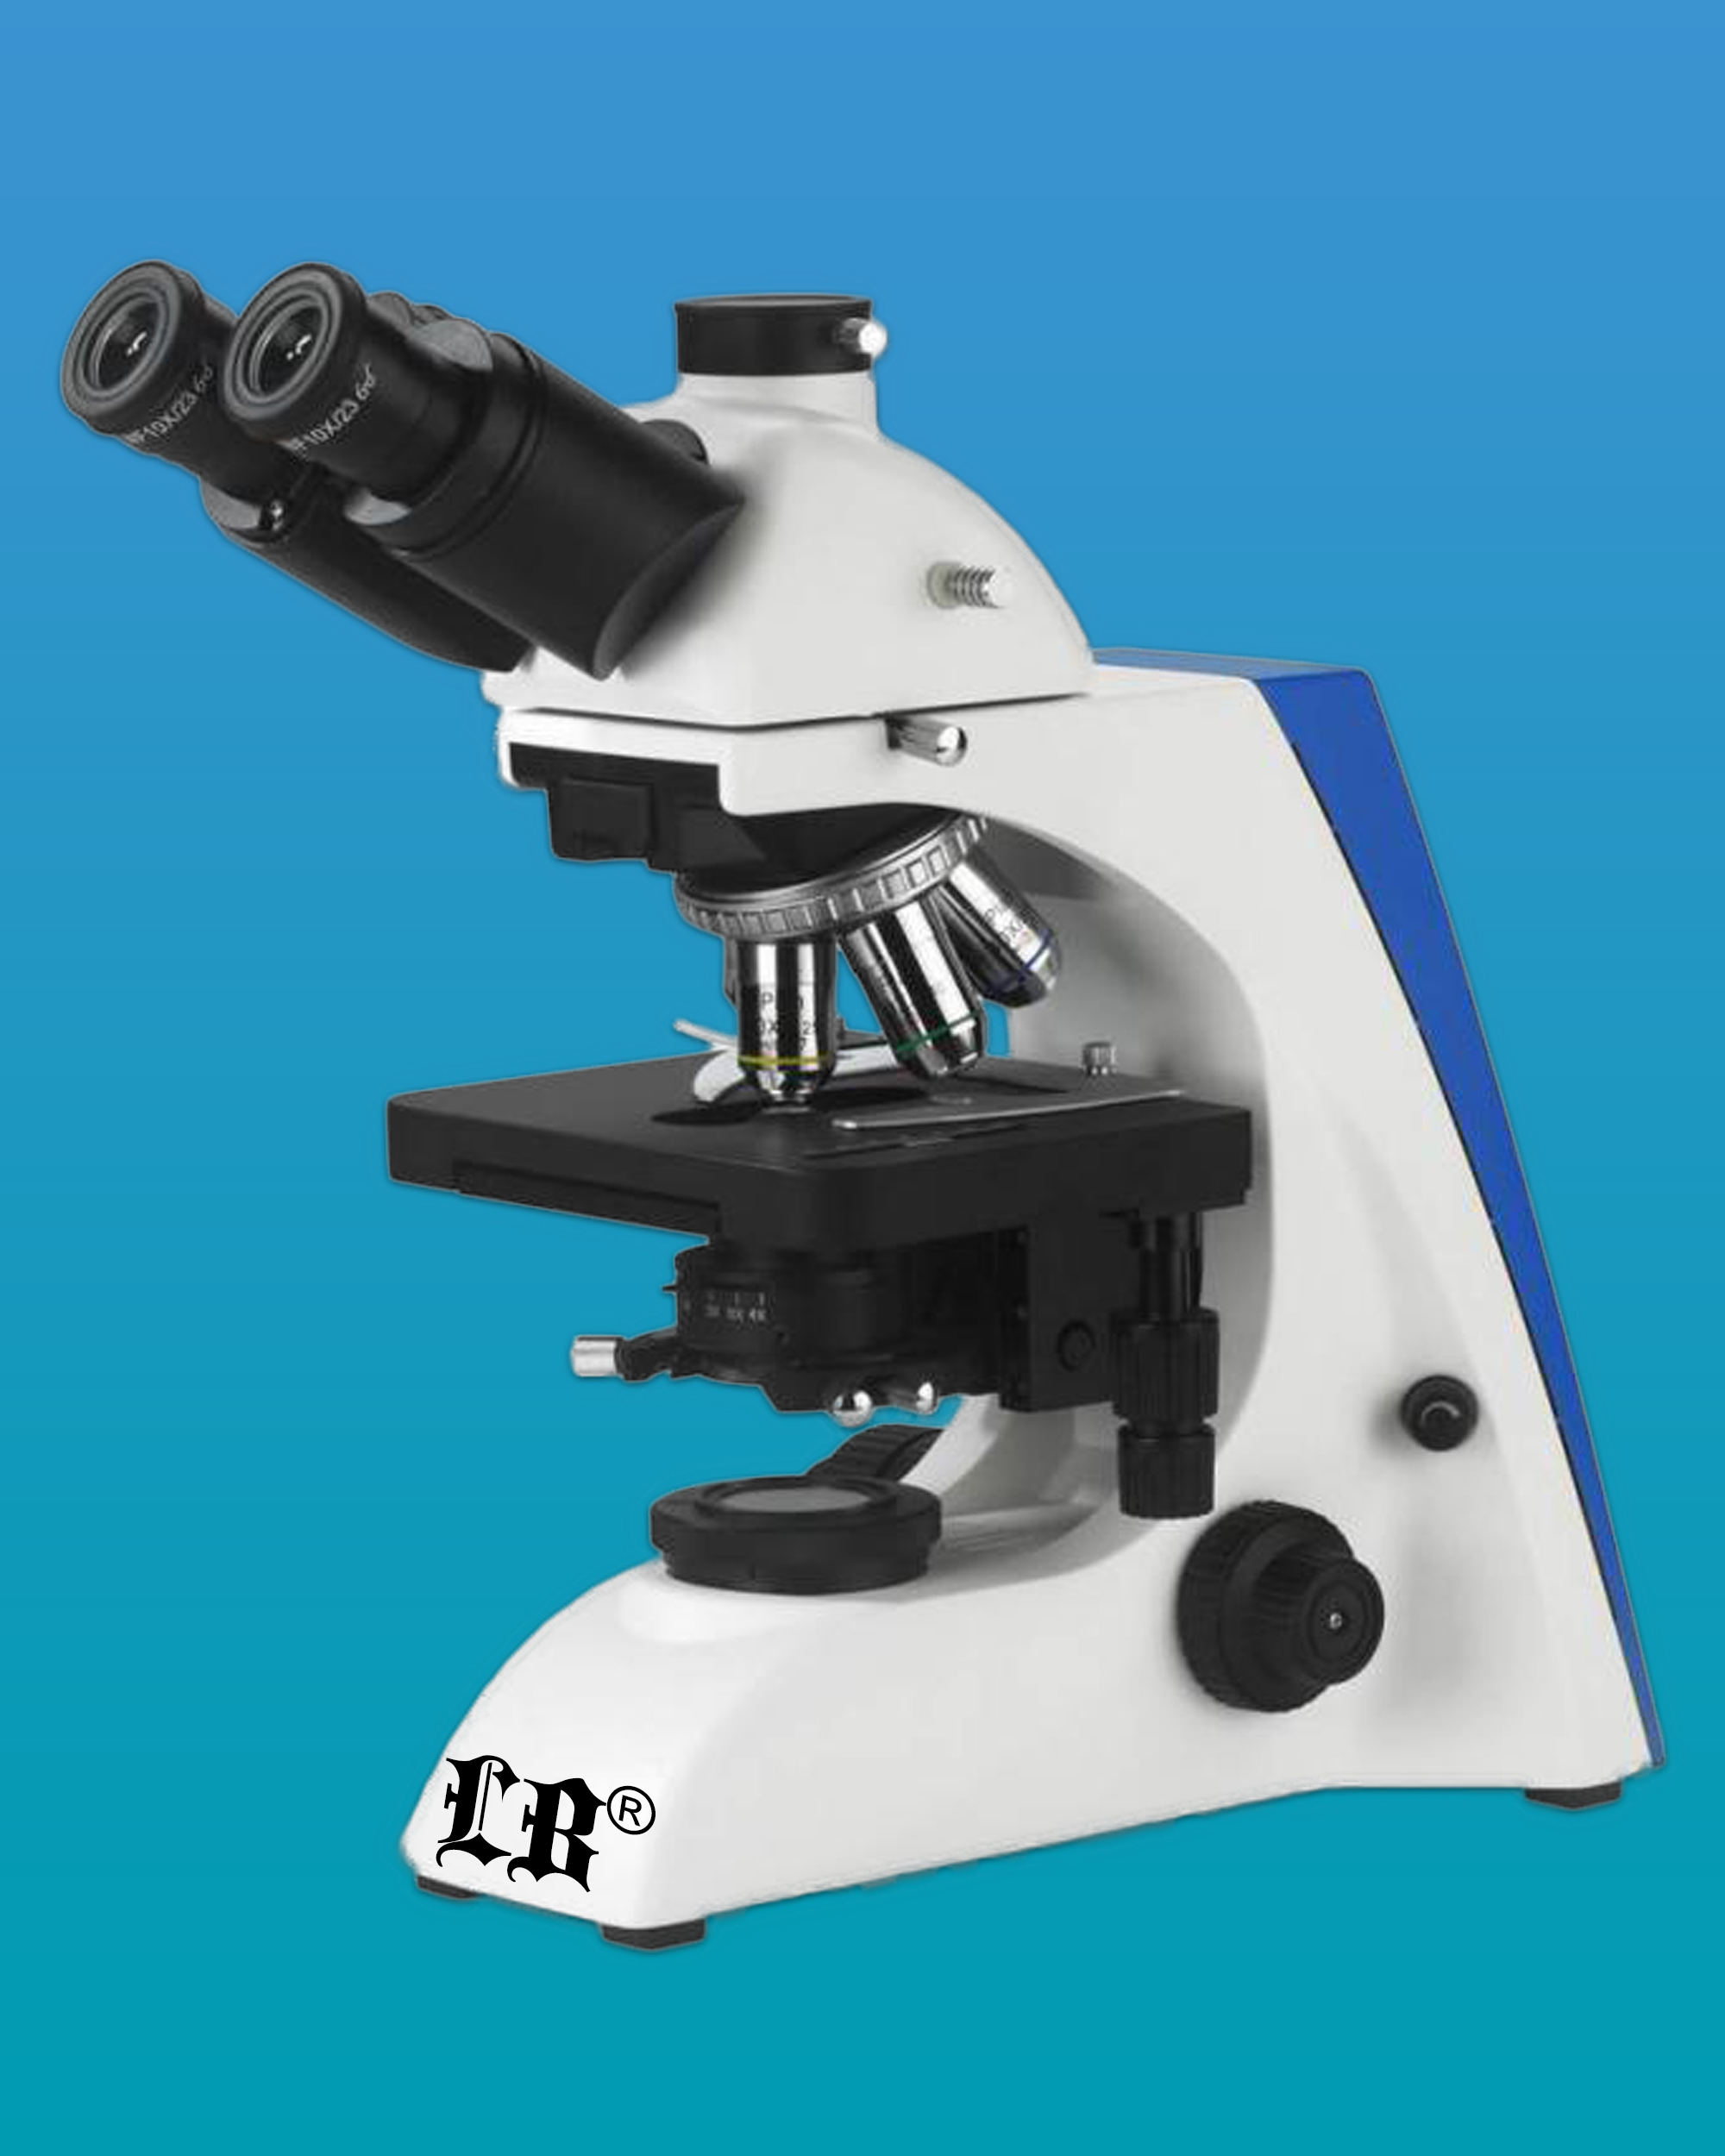 [LB-276] Biological Binocular Microscope w/ Infinite Optical System, Wide Field, Infinite Plan Achromatic Objectives (4x, 10x, 20x, 40x, 100x)